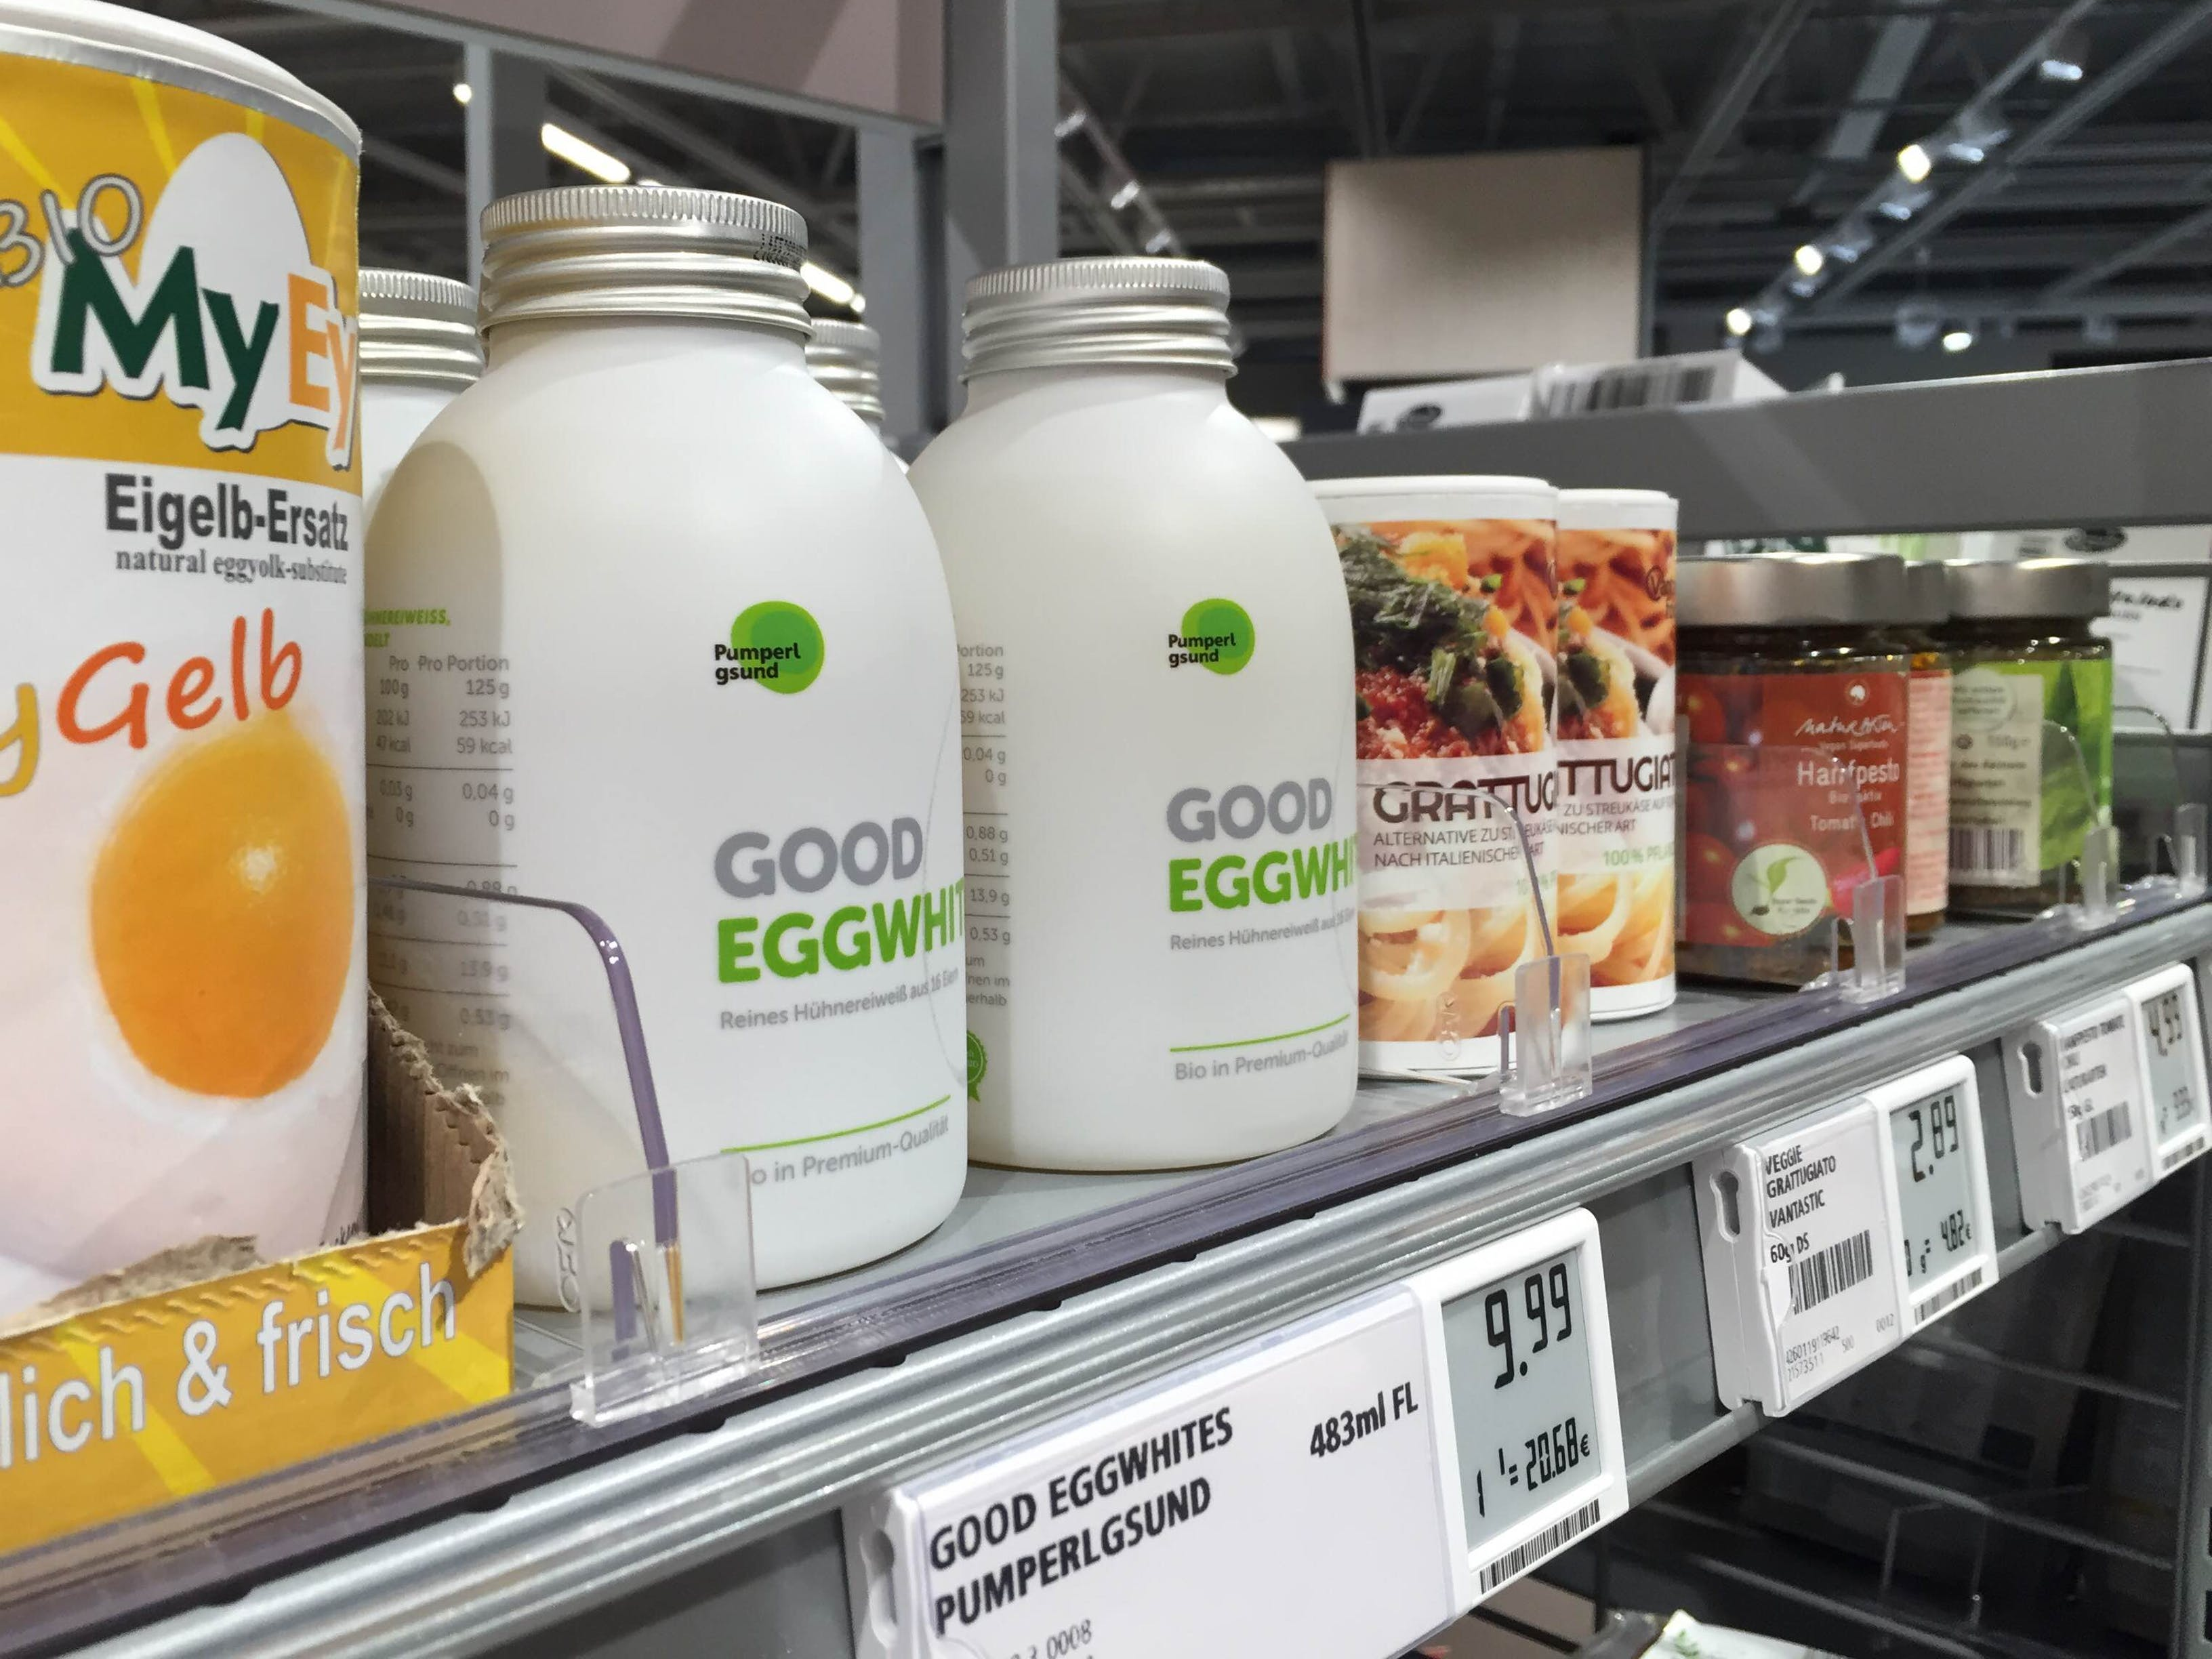 White branded bottles with good eggwhites from Pumperlgsund shown on supermarket shelf next to spicery